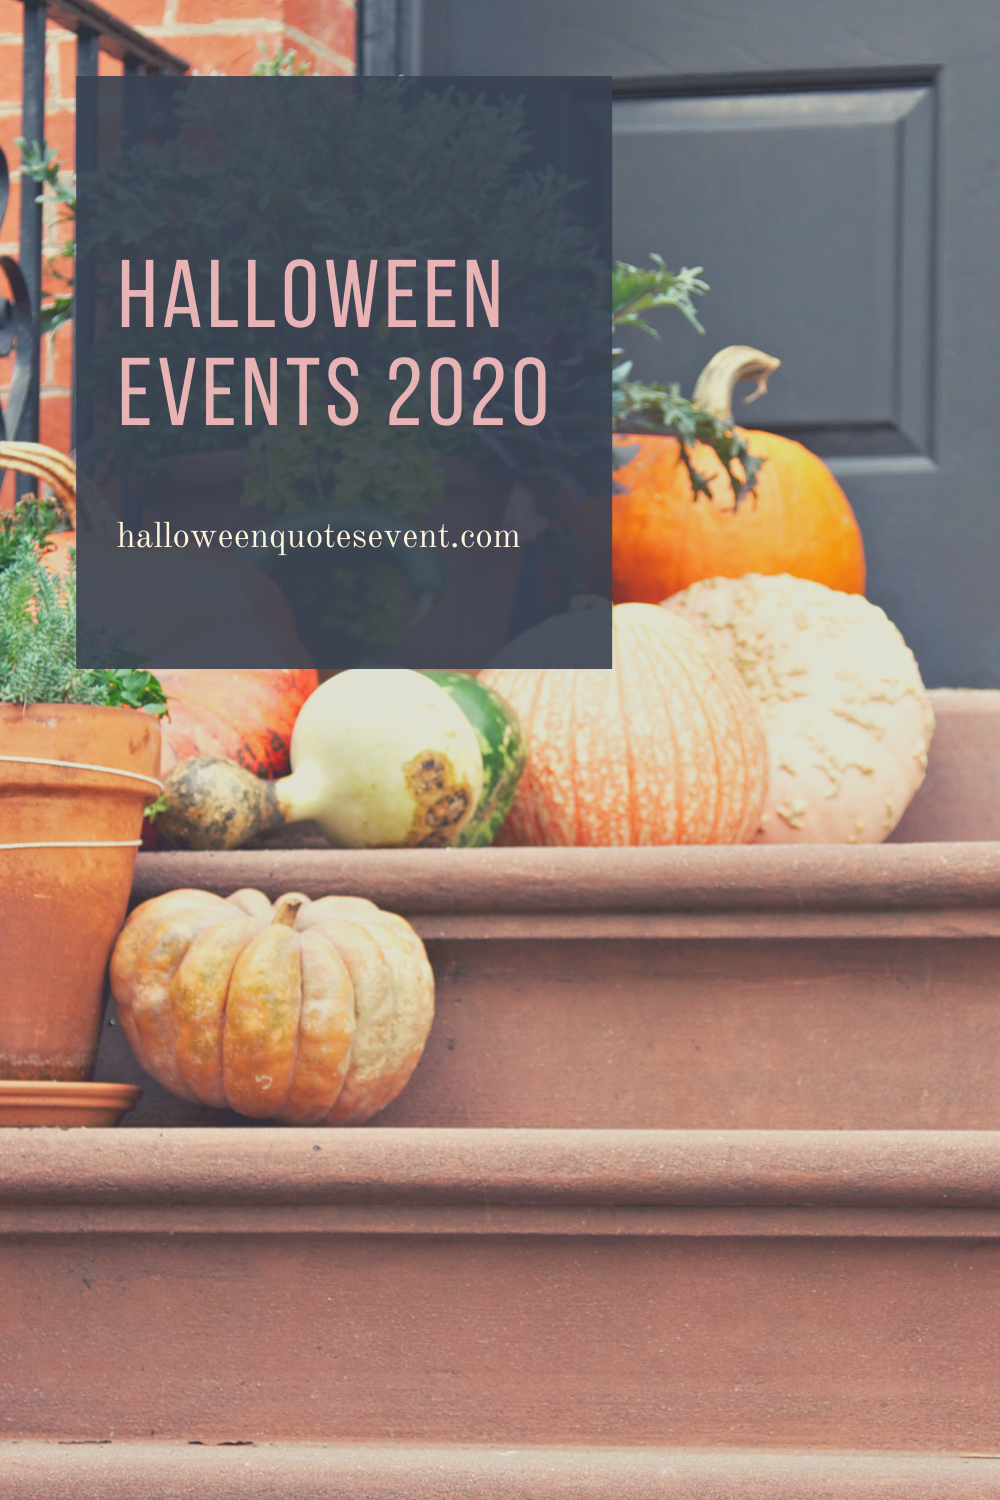 Halloween Events 2020 in 2020 Halloween event, Halloween